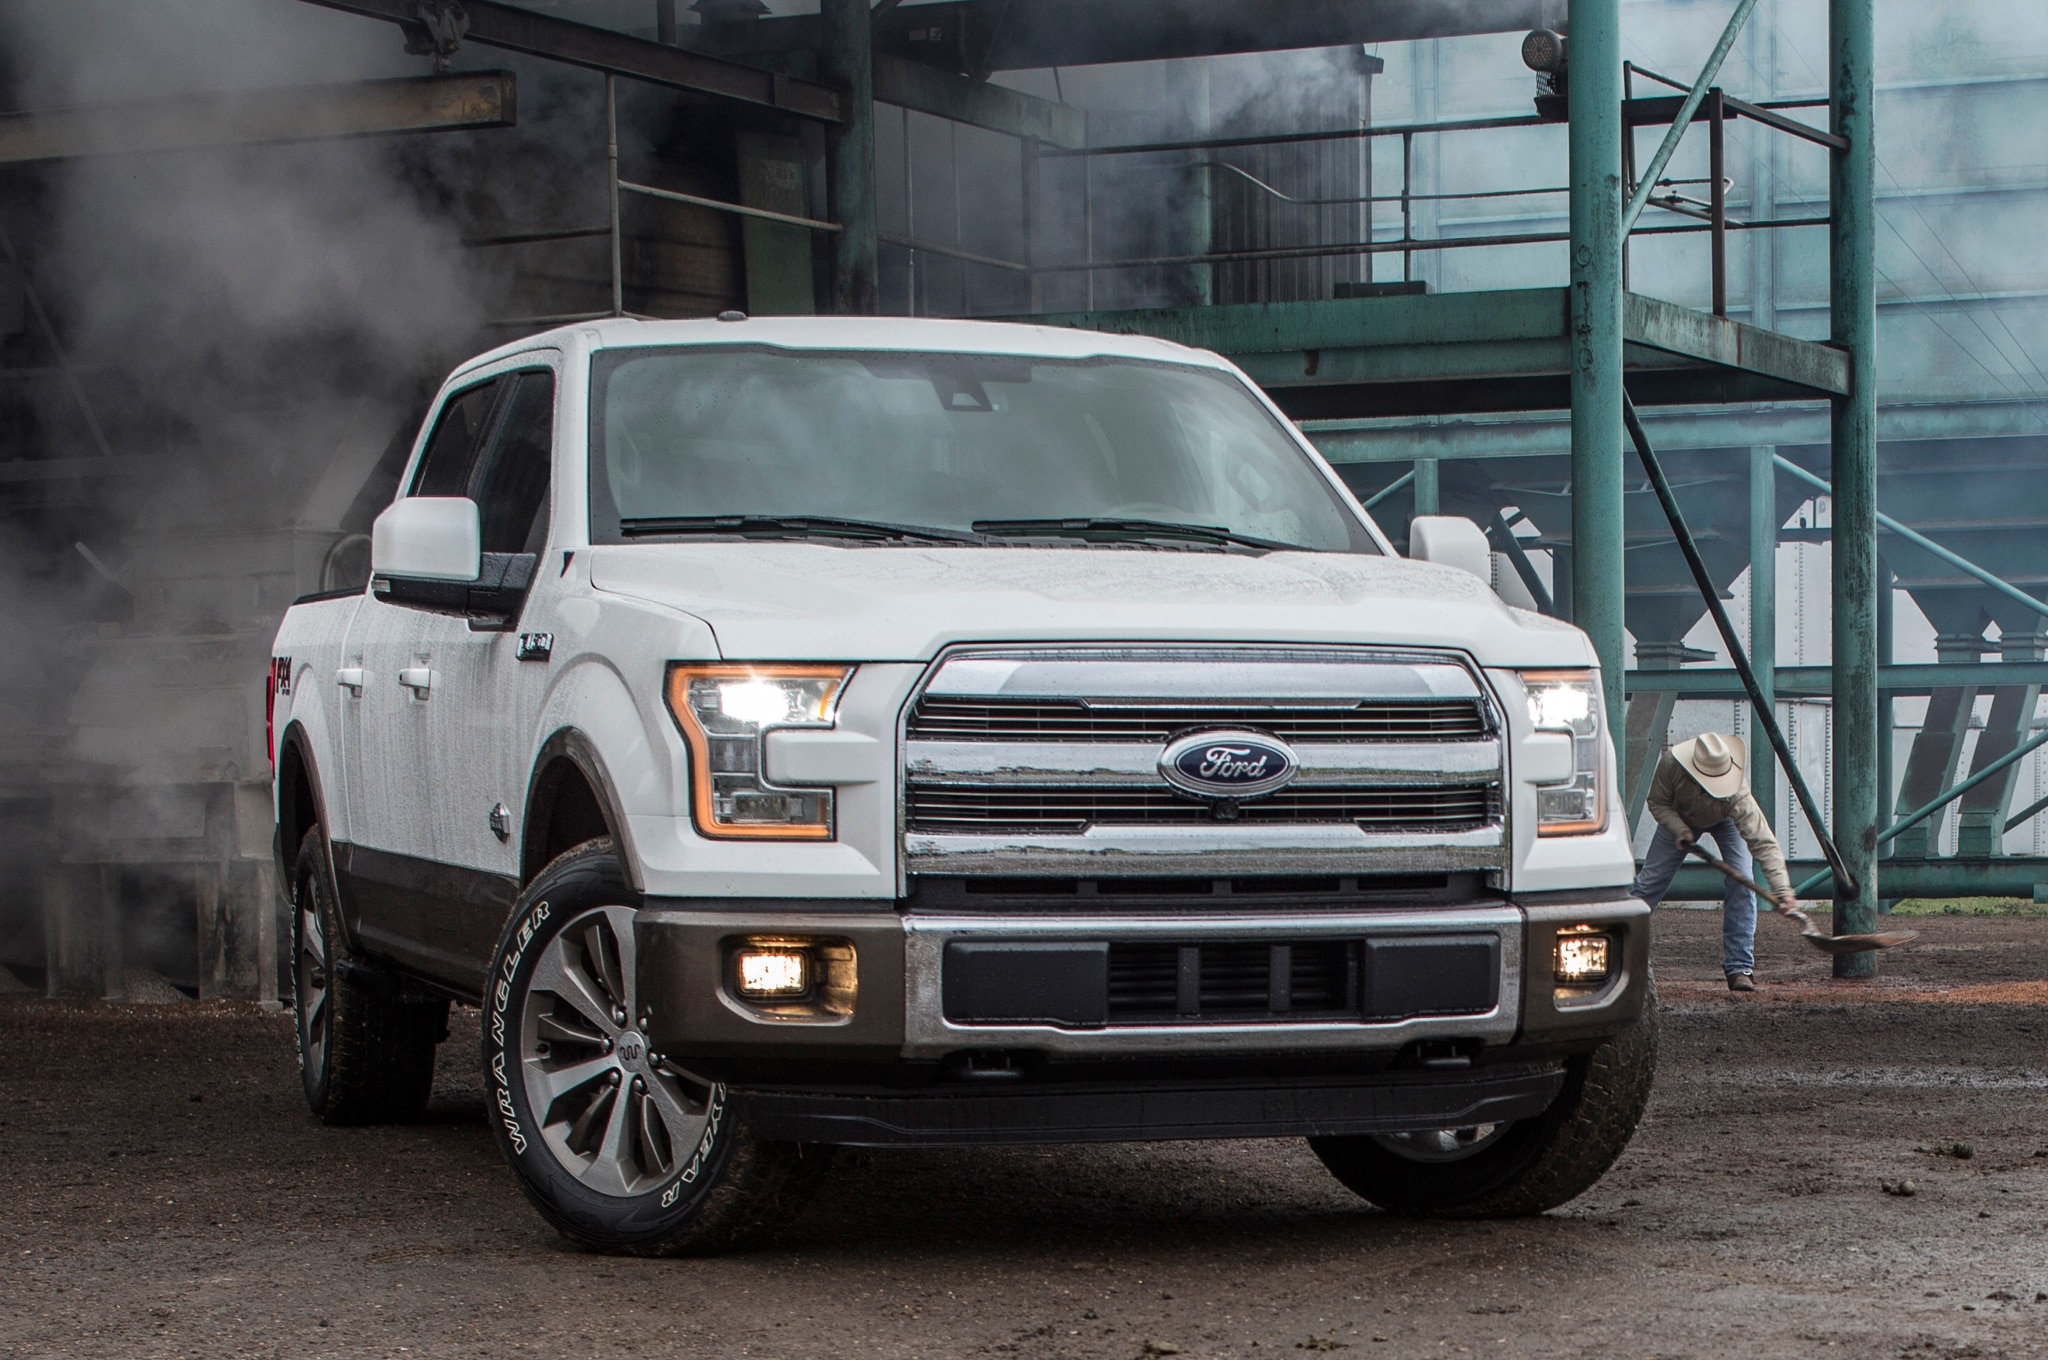 2015 ford f 150 king ranch - 2015 Ford F 150 King Ranch Tailgate